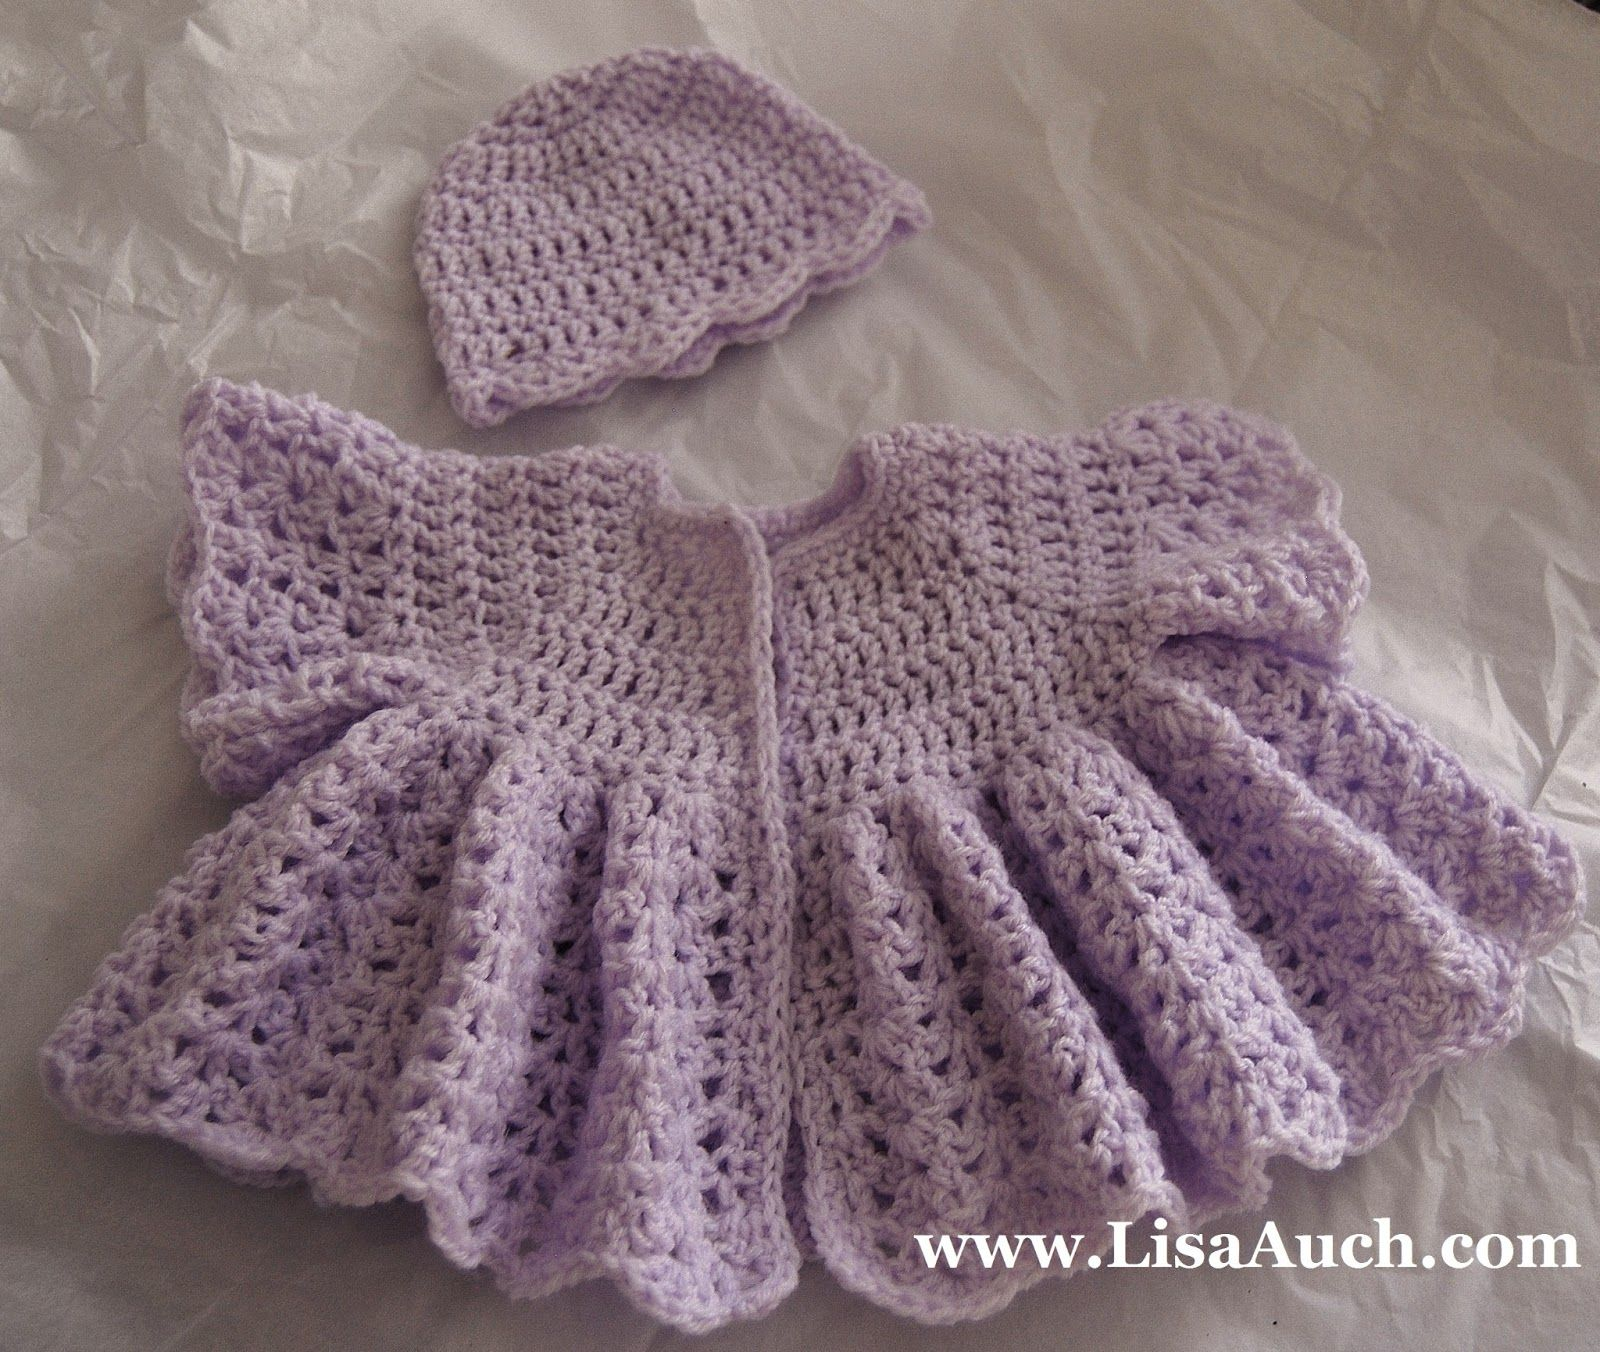 FREE Crochet Patterns: Easy Free Crochet Cardigan for Baby - Free ...